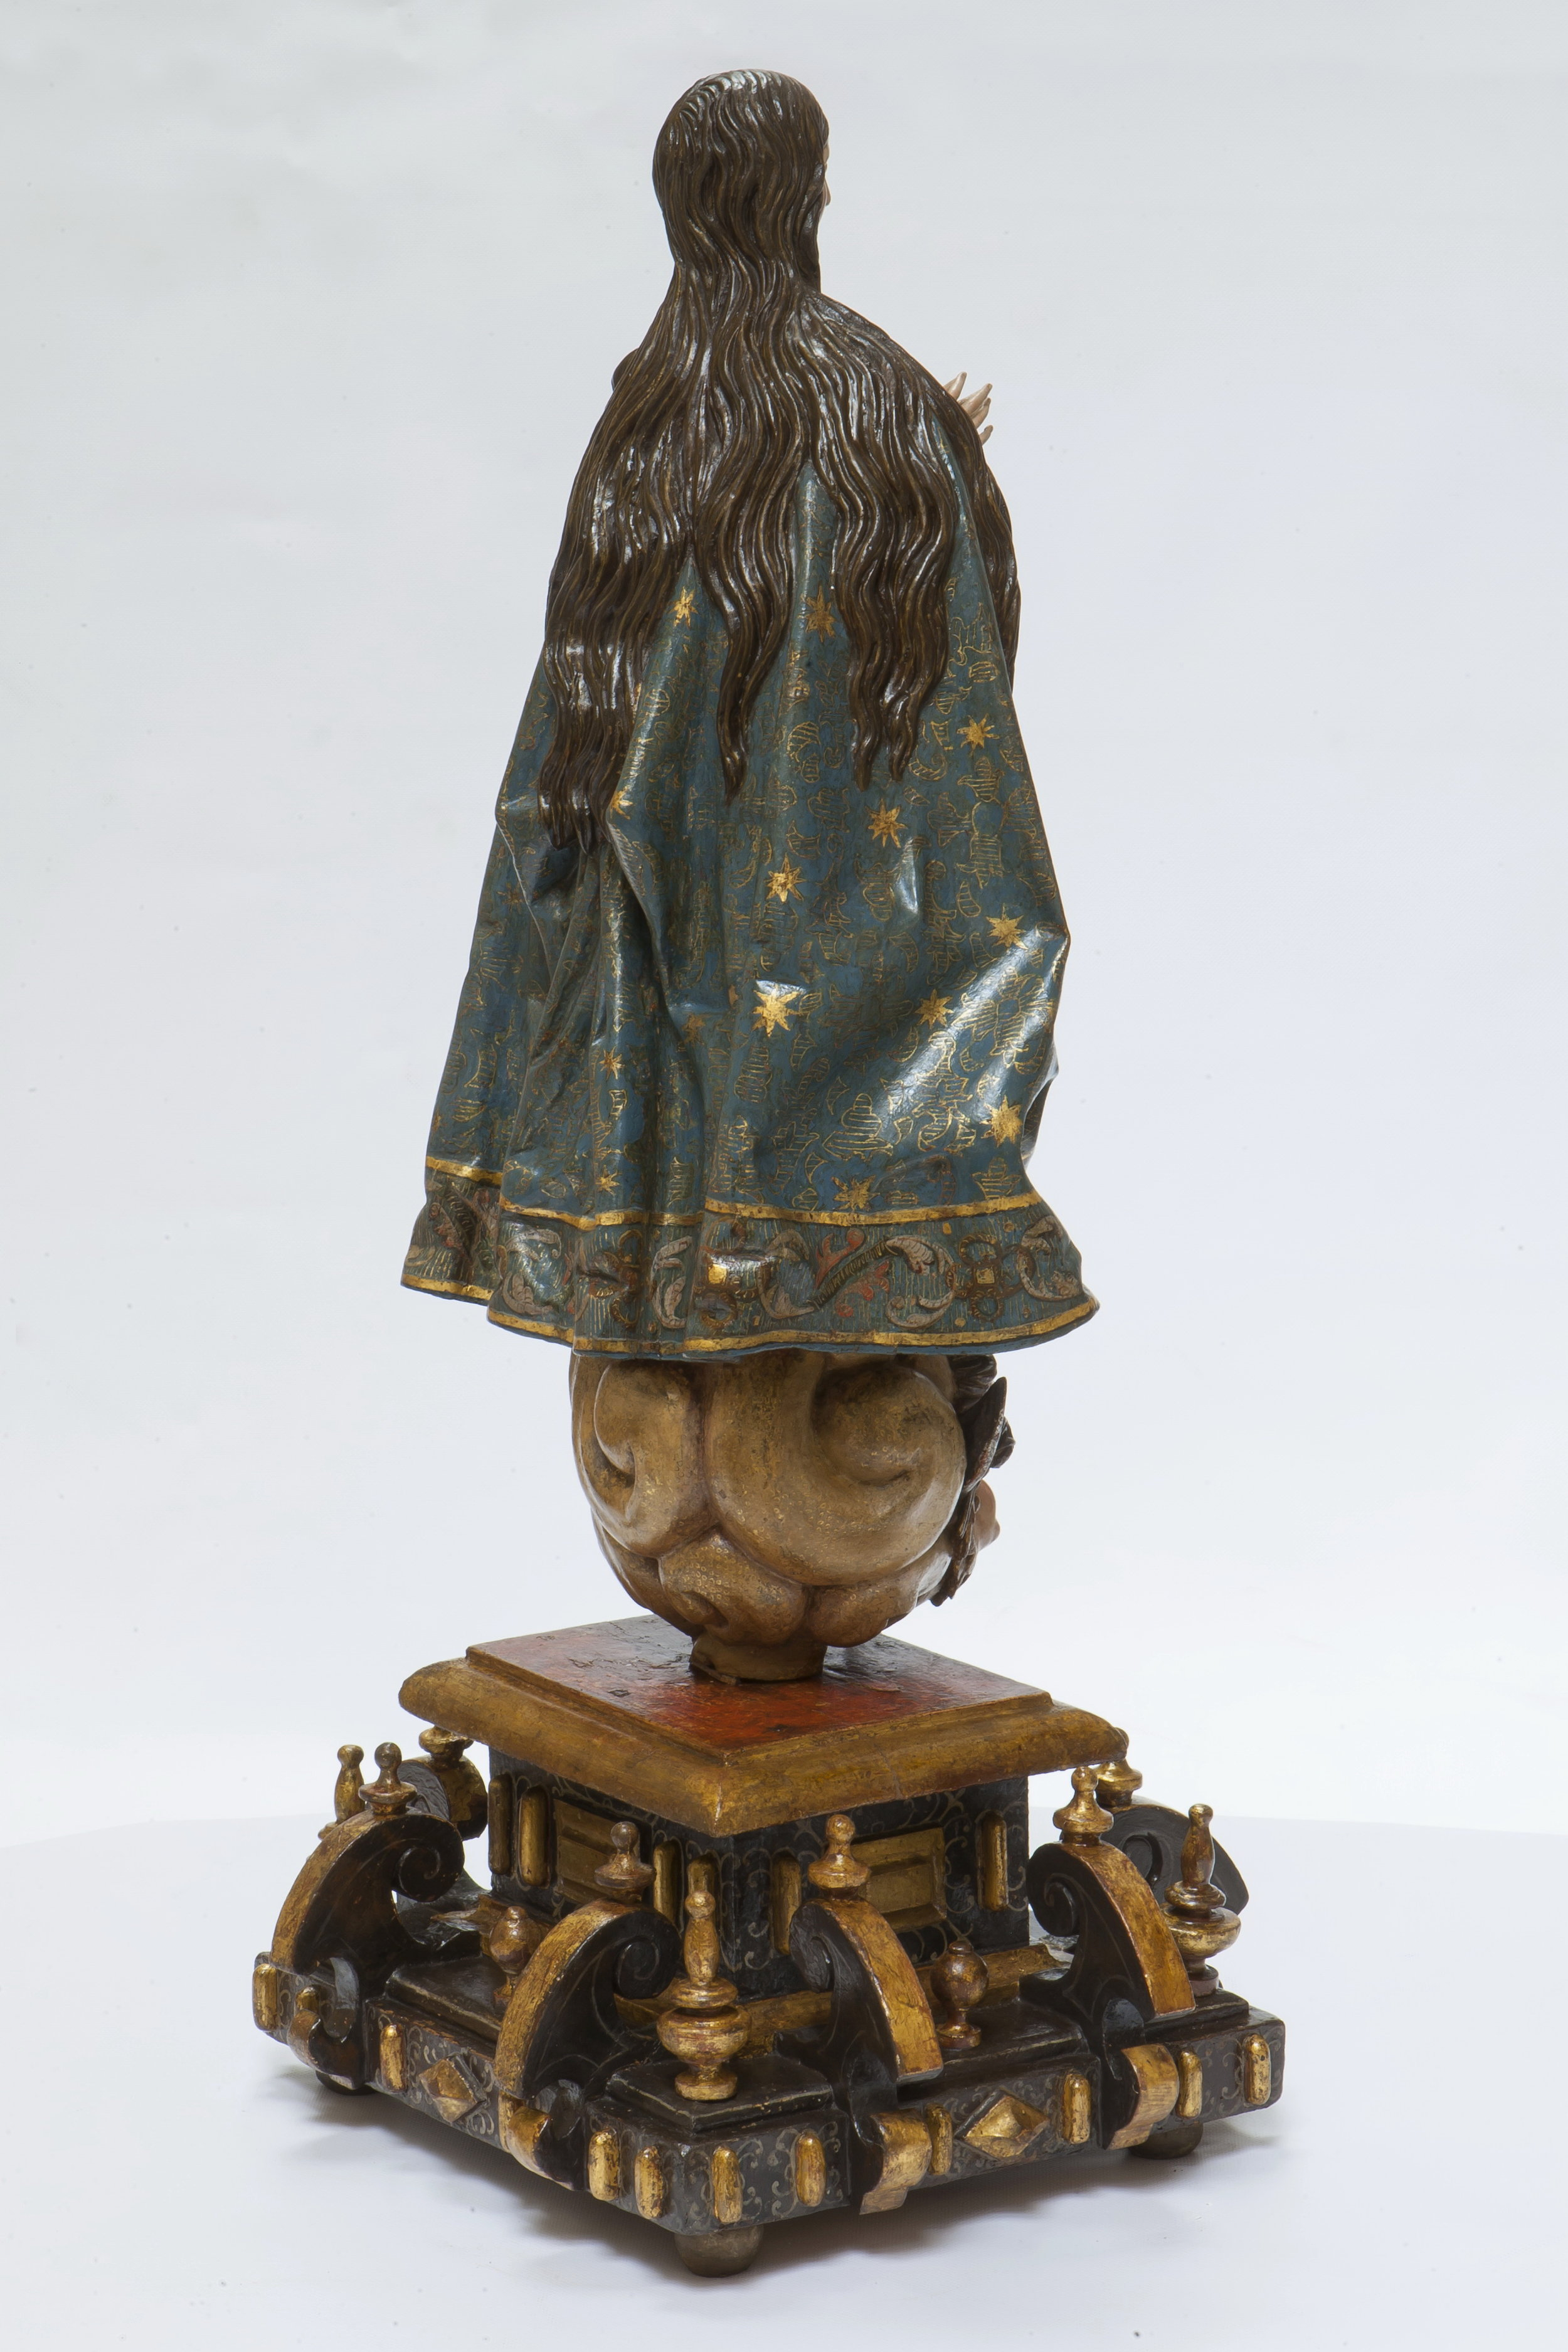 Gregorio Fernández, Virgin of the Immaculate Conception - View from the Reverse